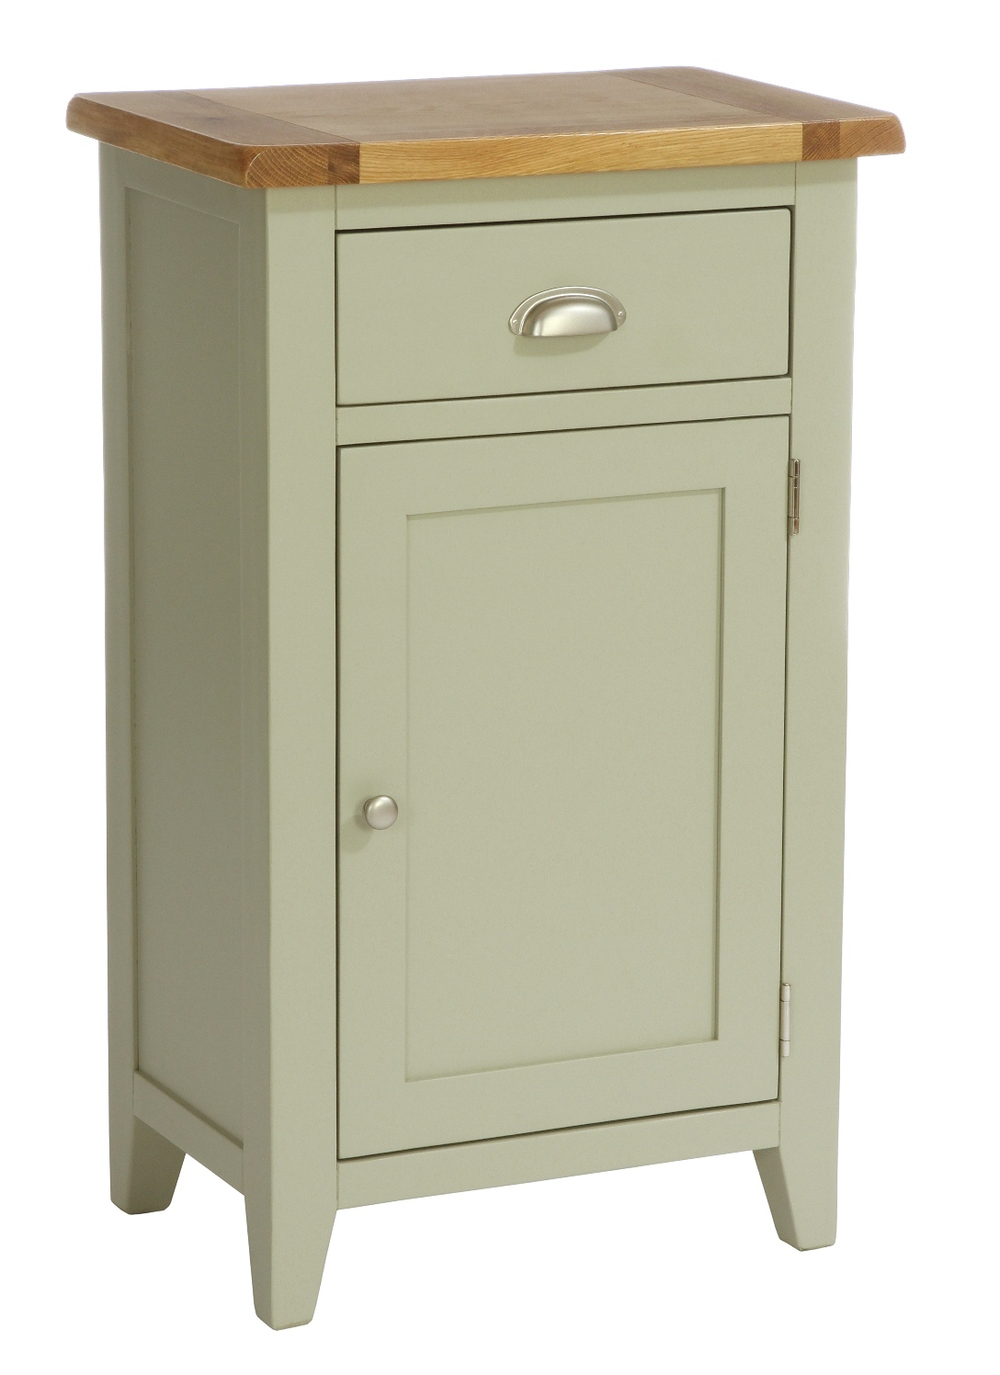 TALL HALL CABINET w 60 x d 40 x h 100 cm € 310 Product Code: ANB063